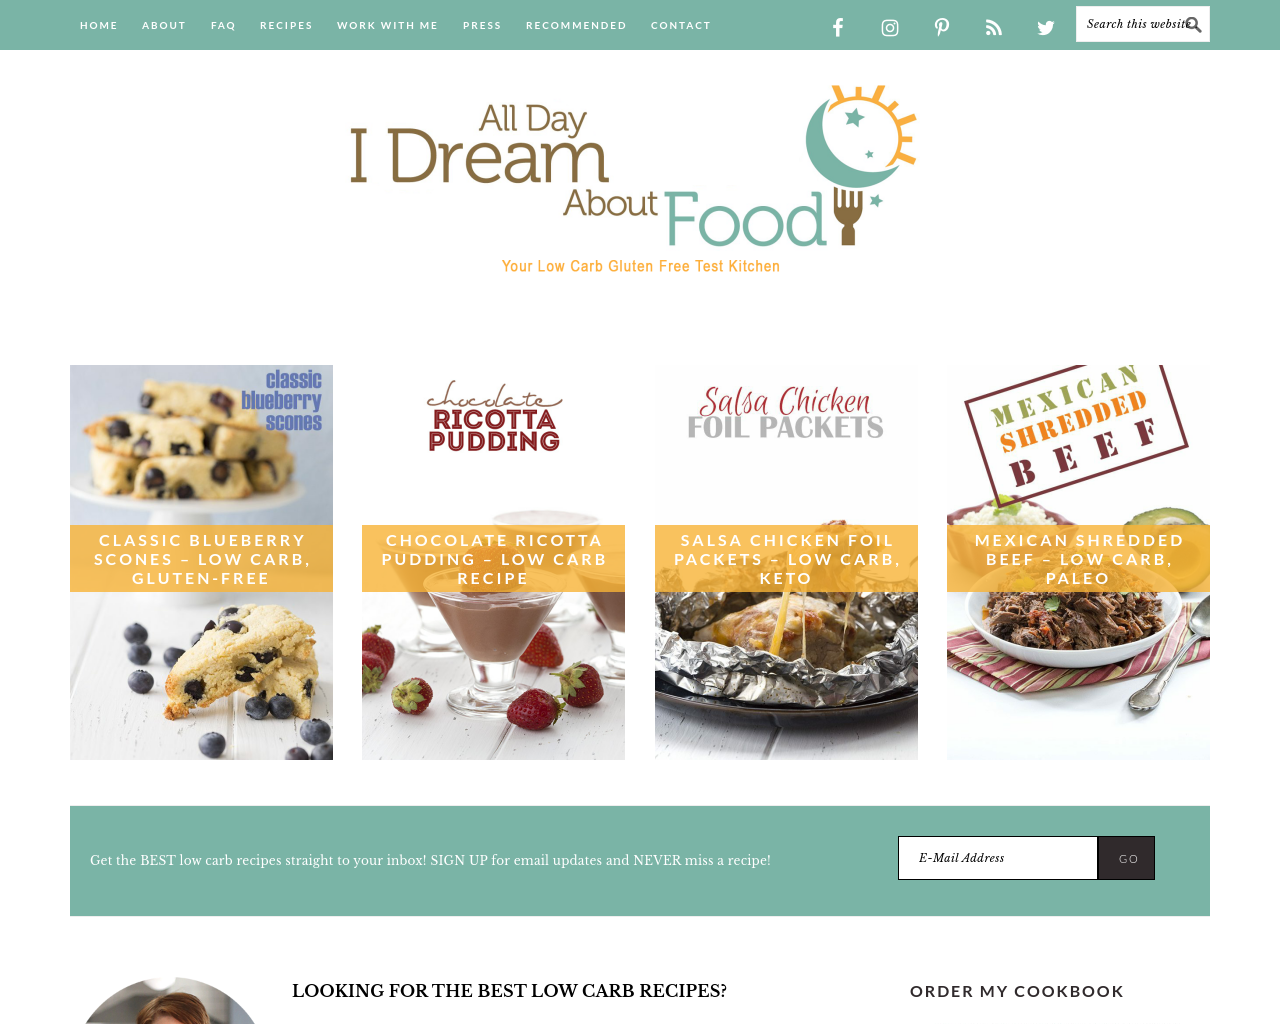 All-Day-I-Dream-About-Food-Advertising-Reviews-Pricing